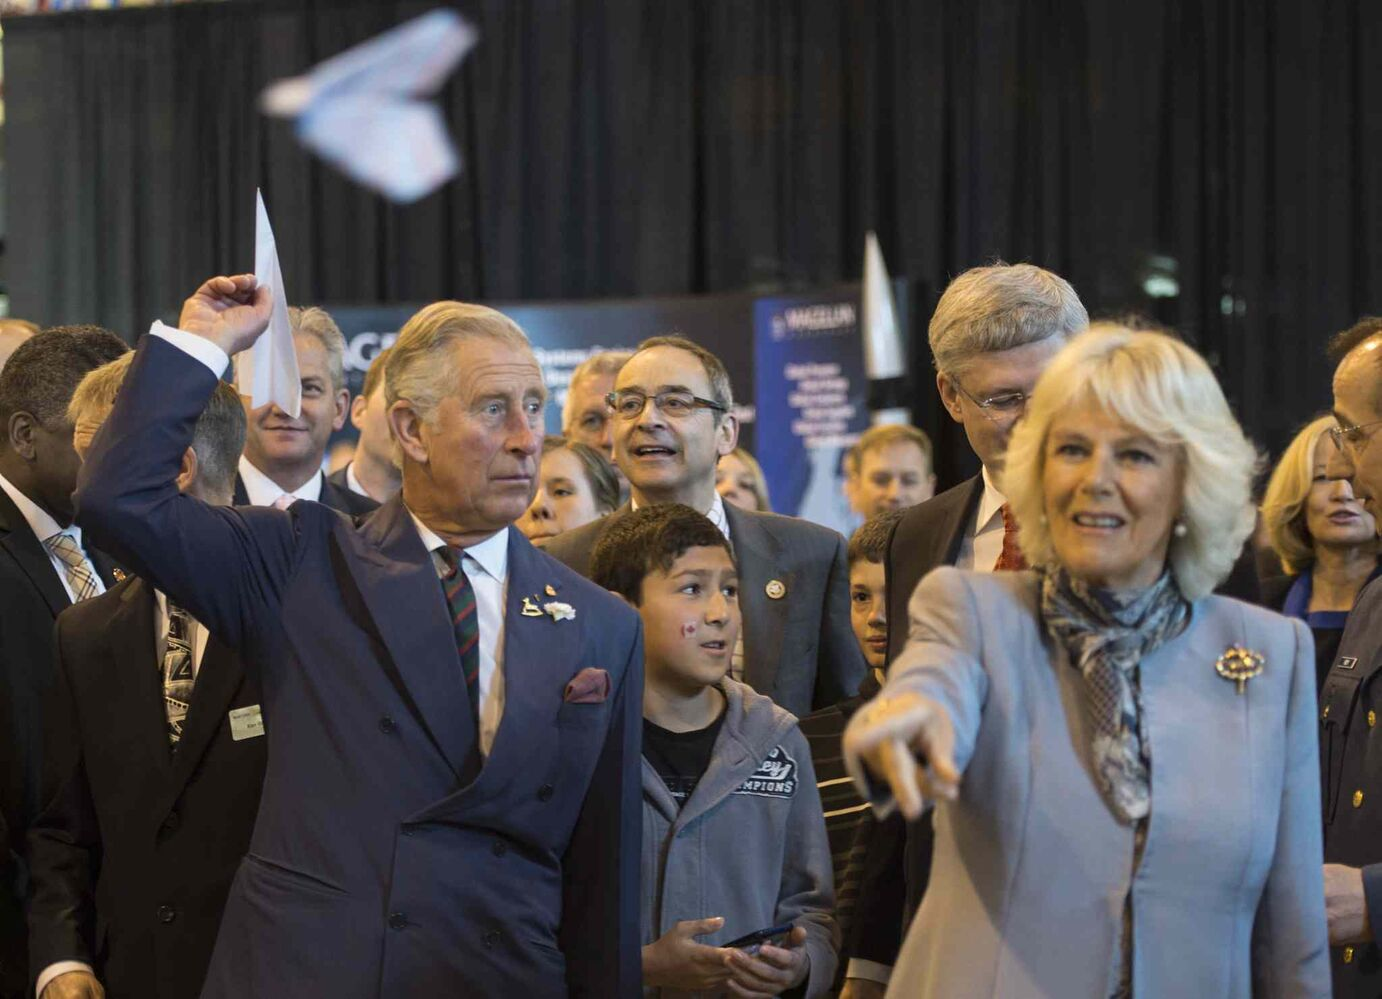 Prince Charles, left, and his wife Camilla throw paper airplanes with Prime Minister Stephen Harper (obscured) at the Stevenson Hangar.  (Paul Chiasson / The Canadian Press)